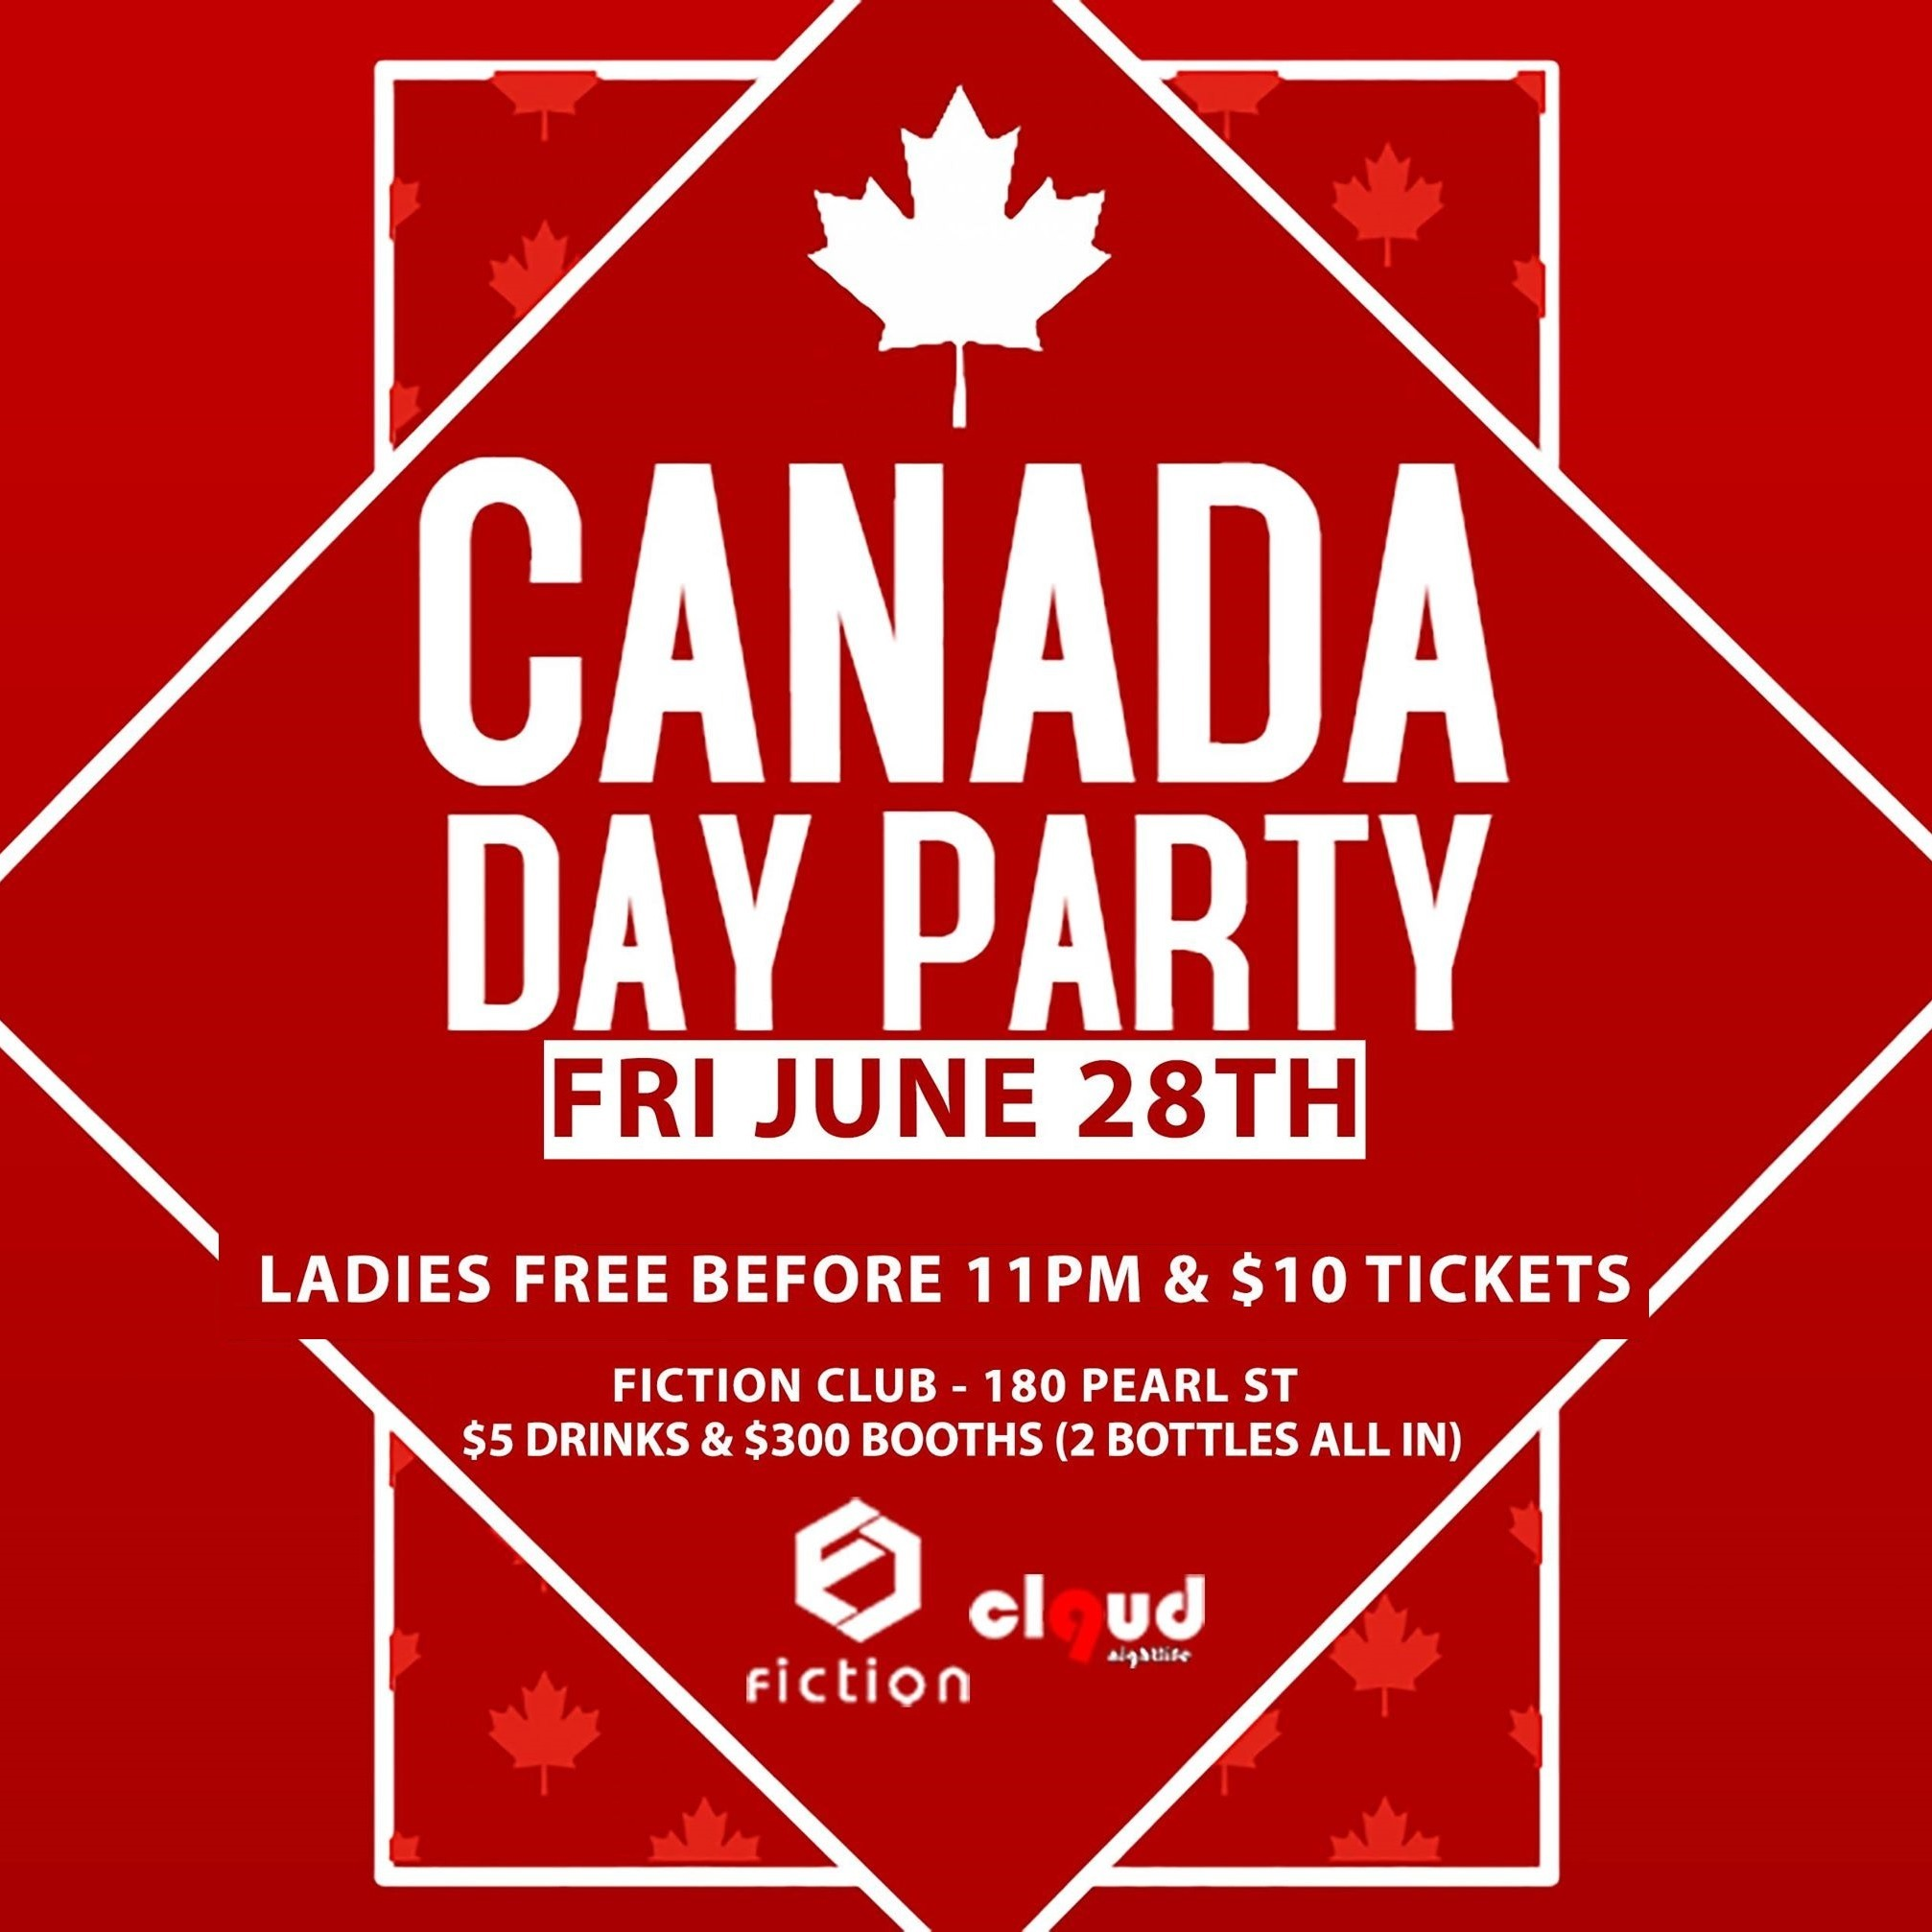 Canada Day Party @ Fiction // Fri June 28 | Ladies FREE & $5 Drinks